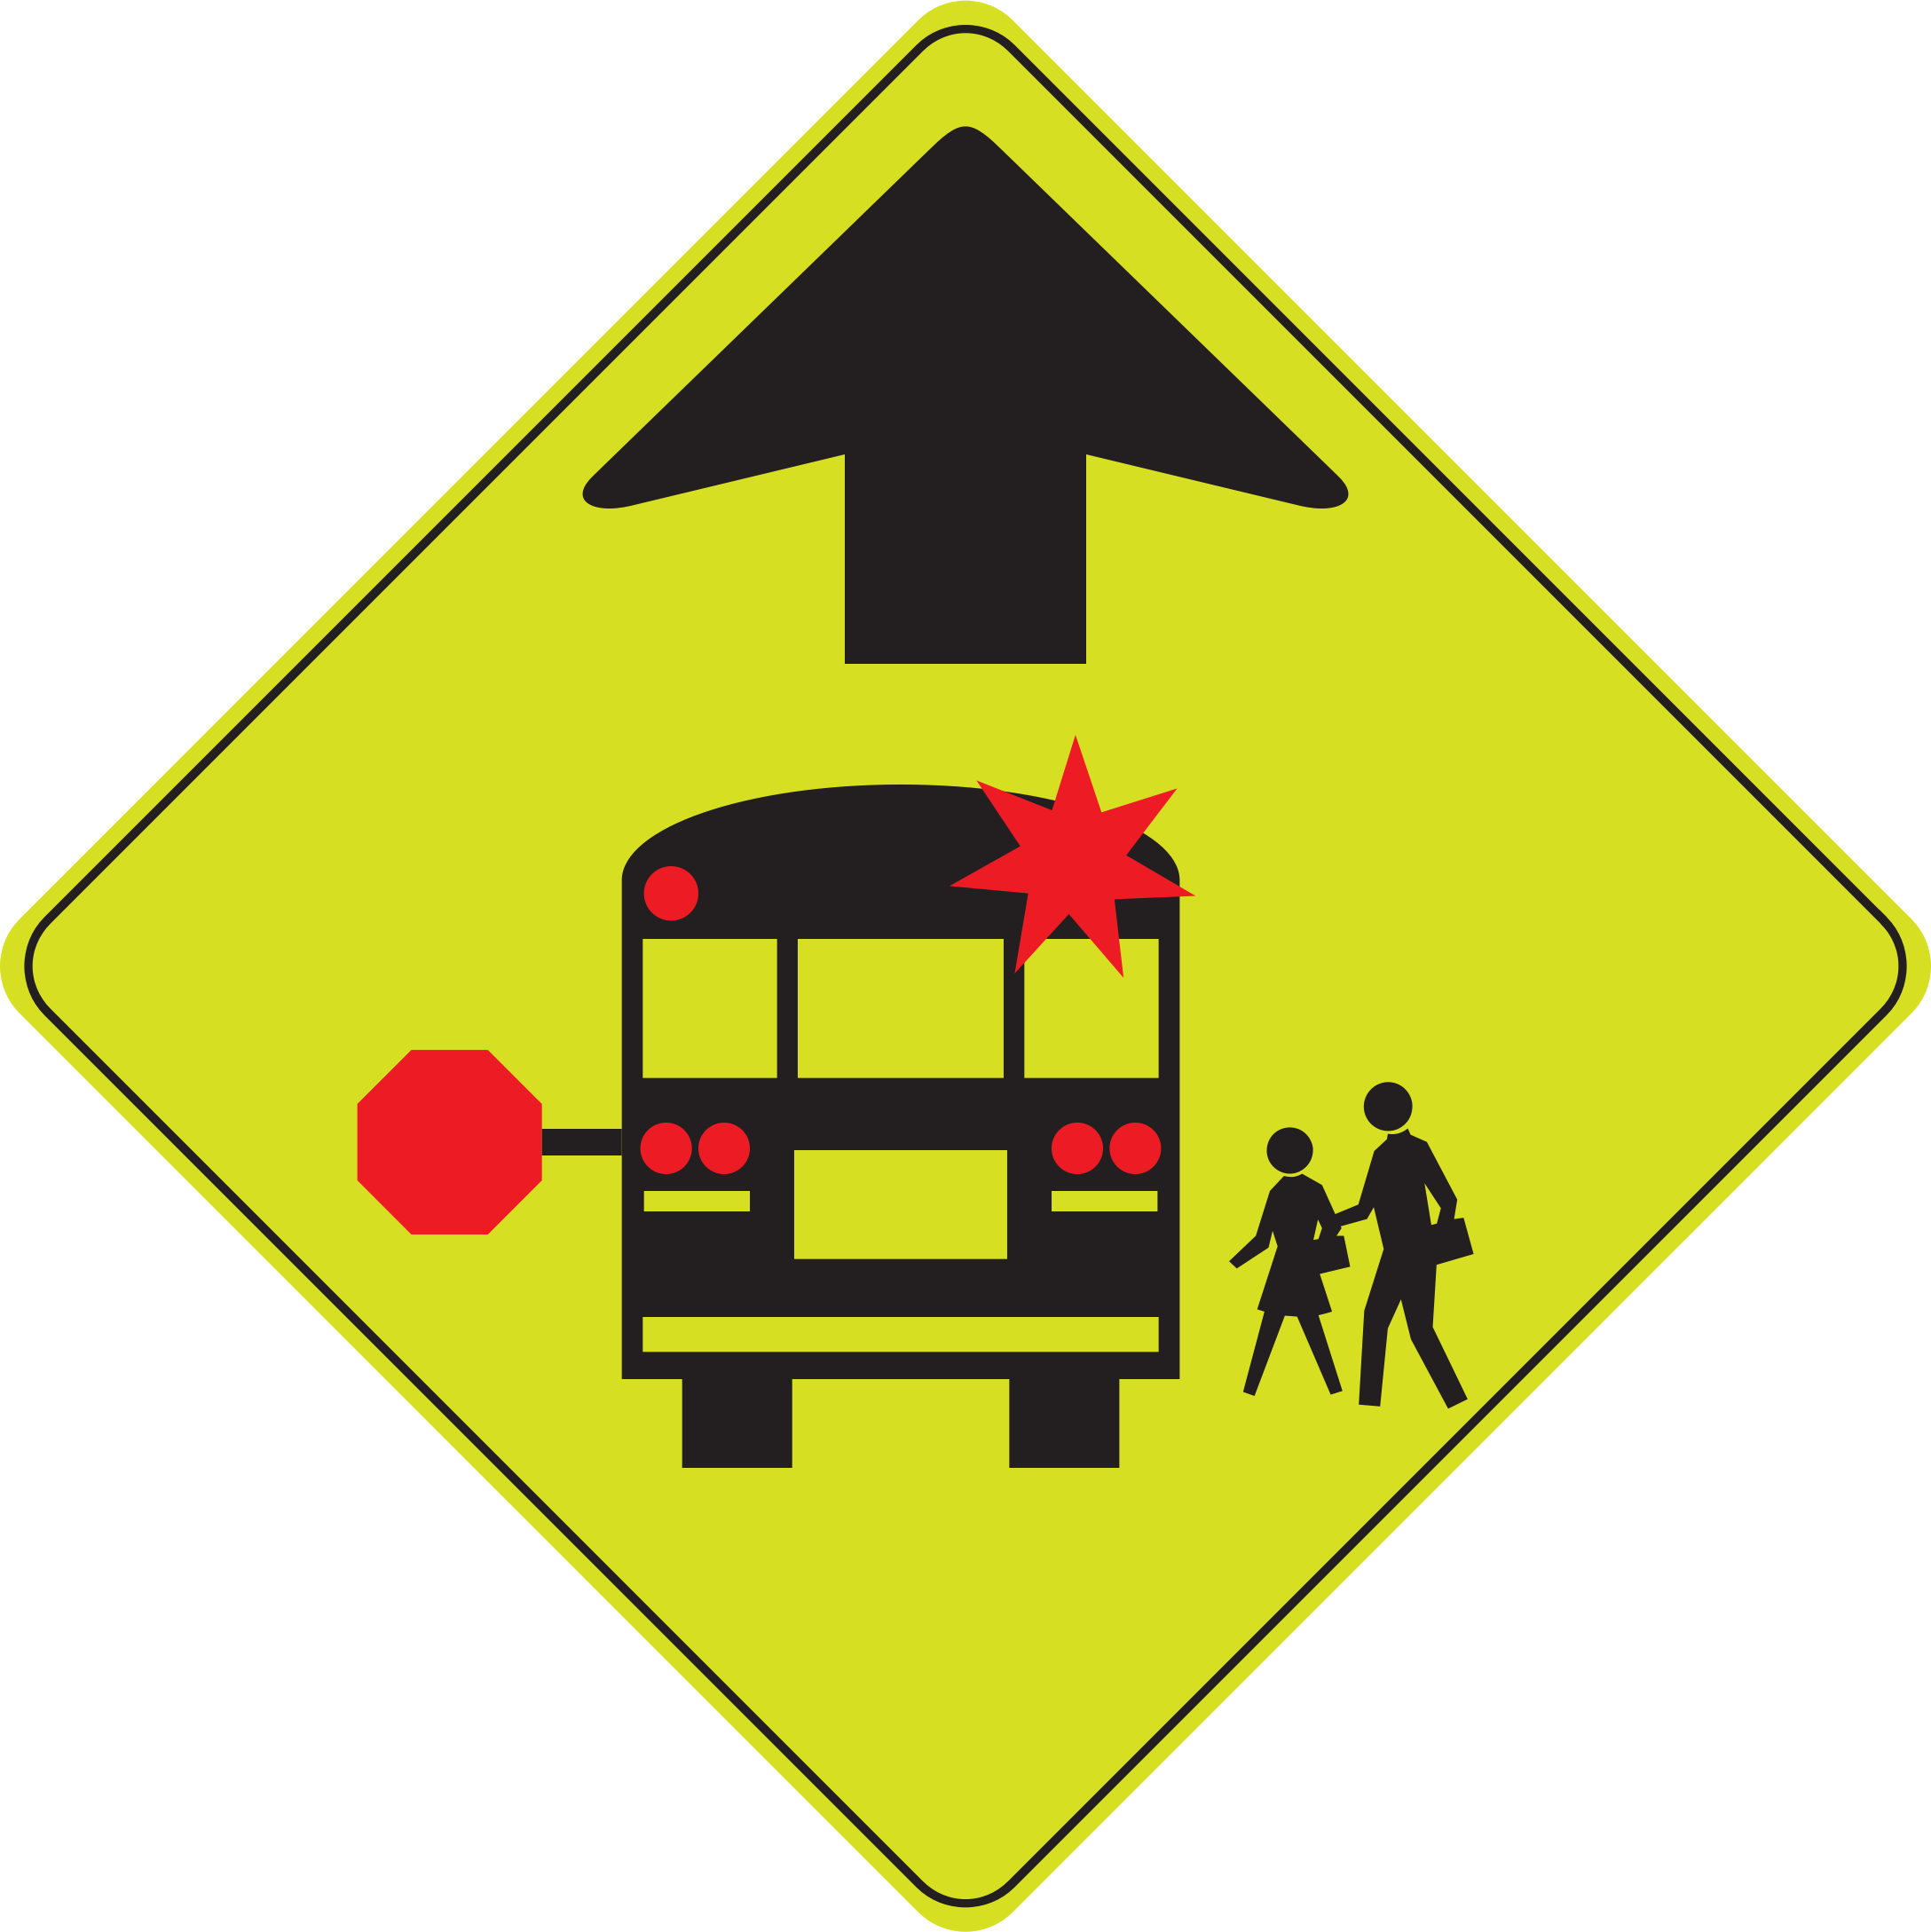 banner royalty free library School bus stop big. Caution clipart ahead.